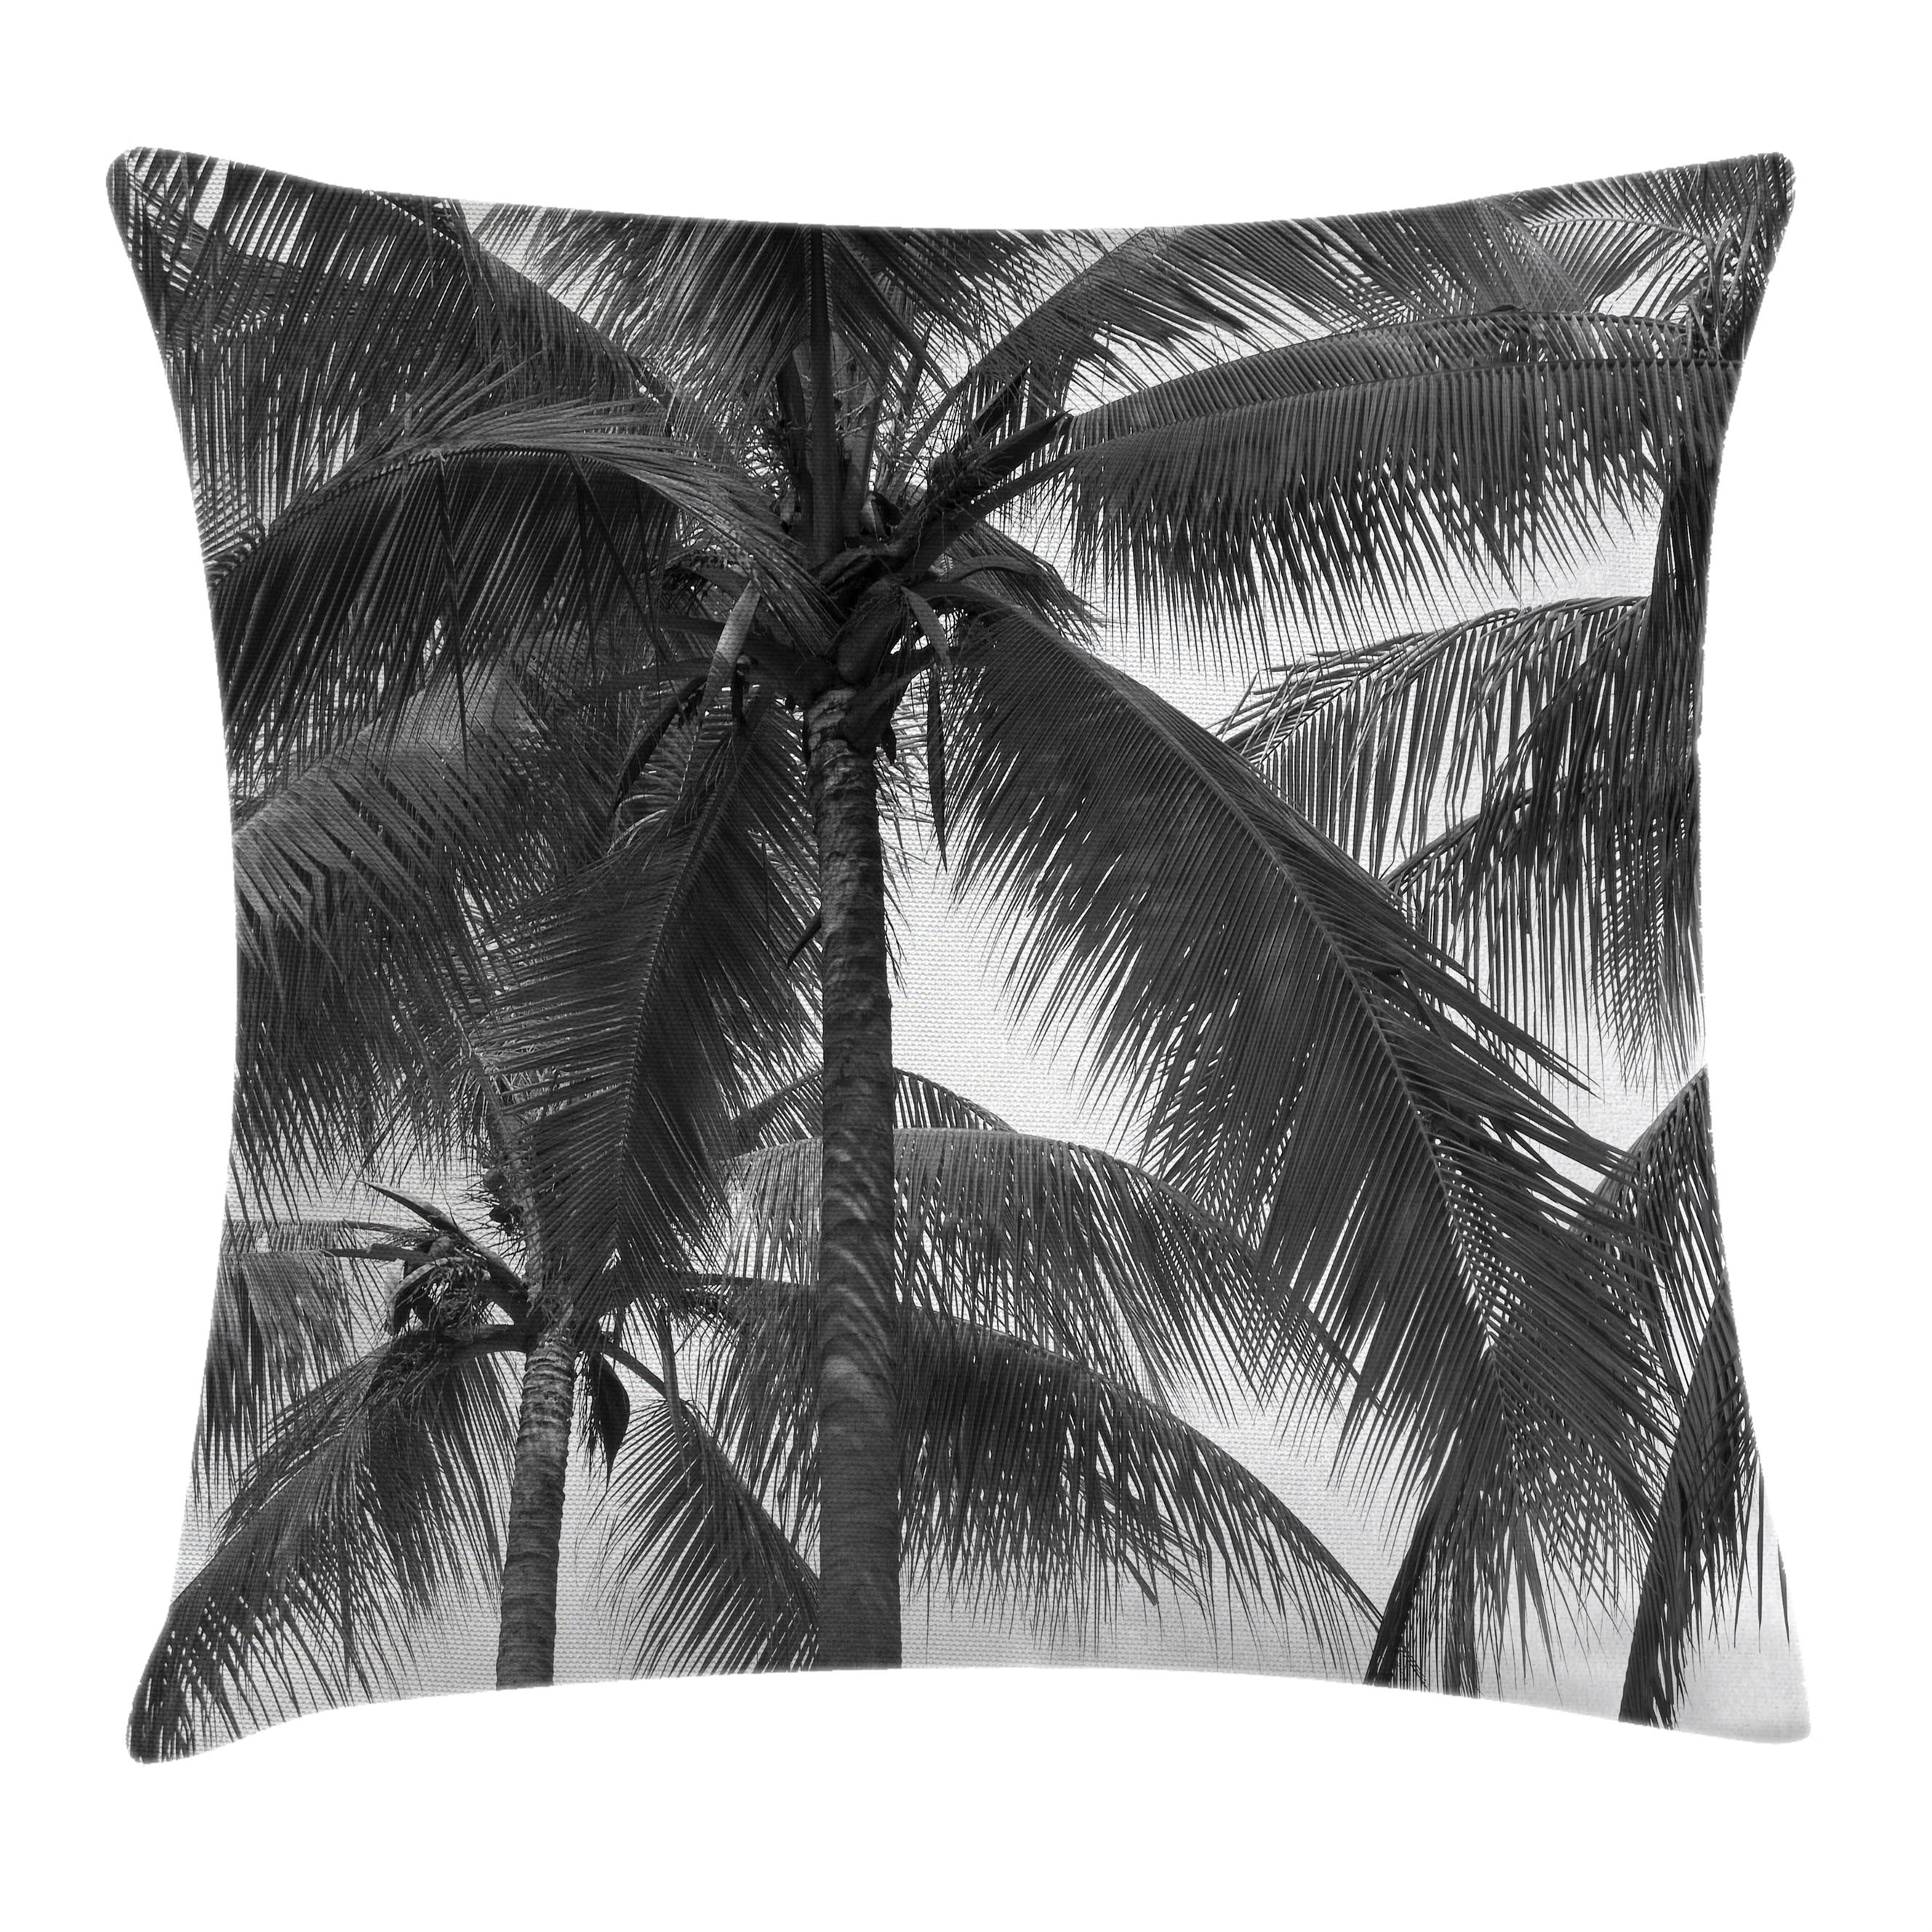 Palm Tree Decor Throw Pillow Cushion Cover, Palm Tree Silhouette Exotic Plant on Dark Thema Foliages Relax in Nature Image, Decorative Square Accent Pillow Case, 24 X 24 Inches, Black, by Ambesonne